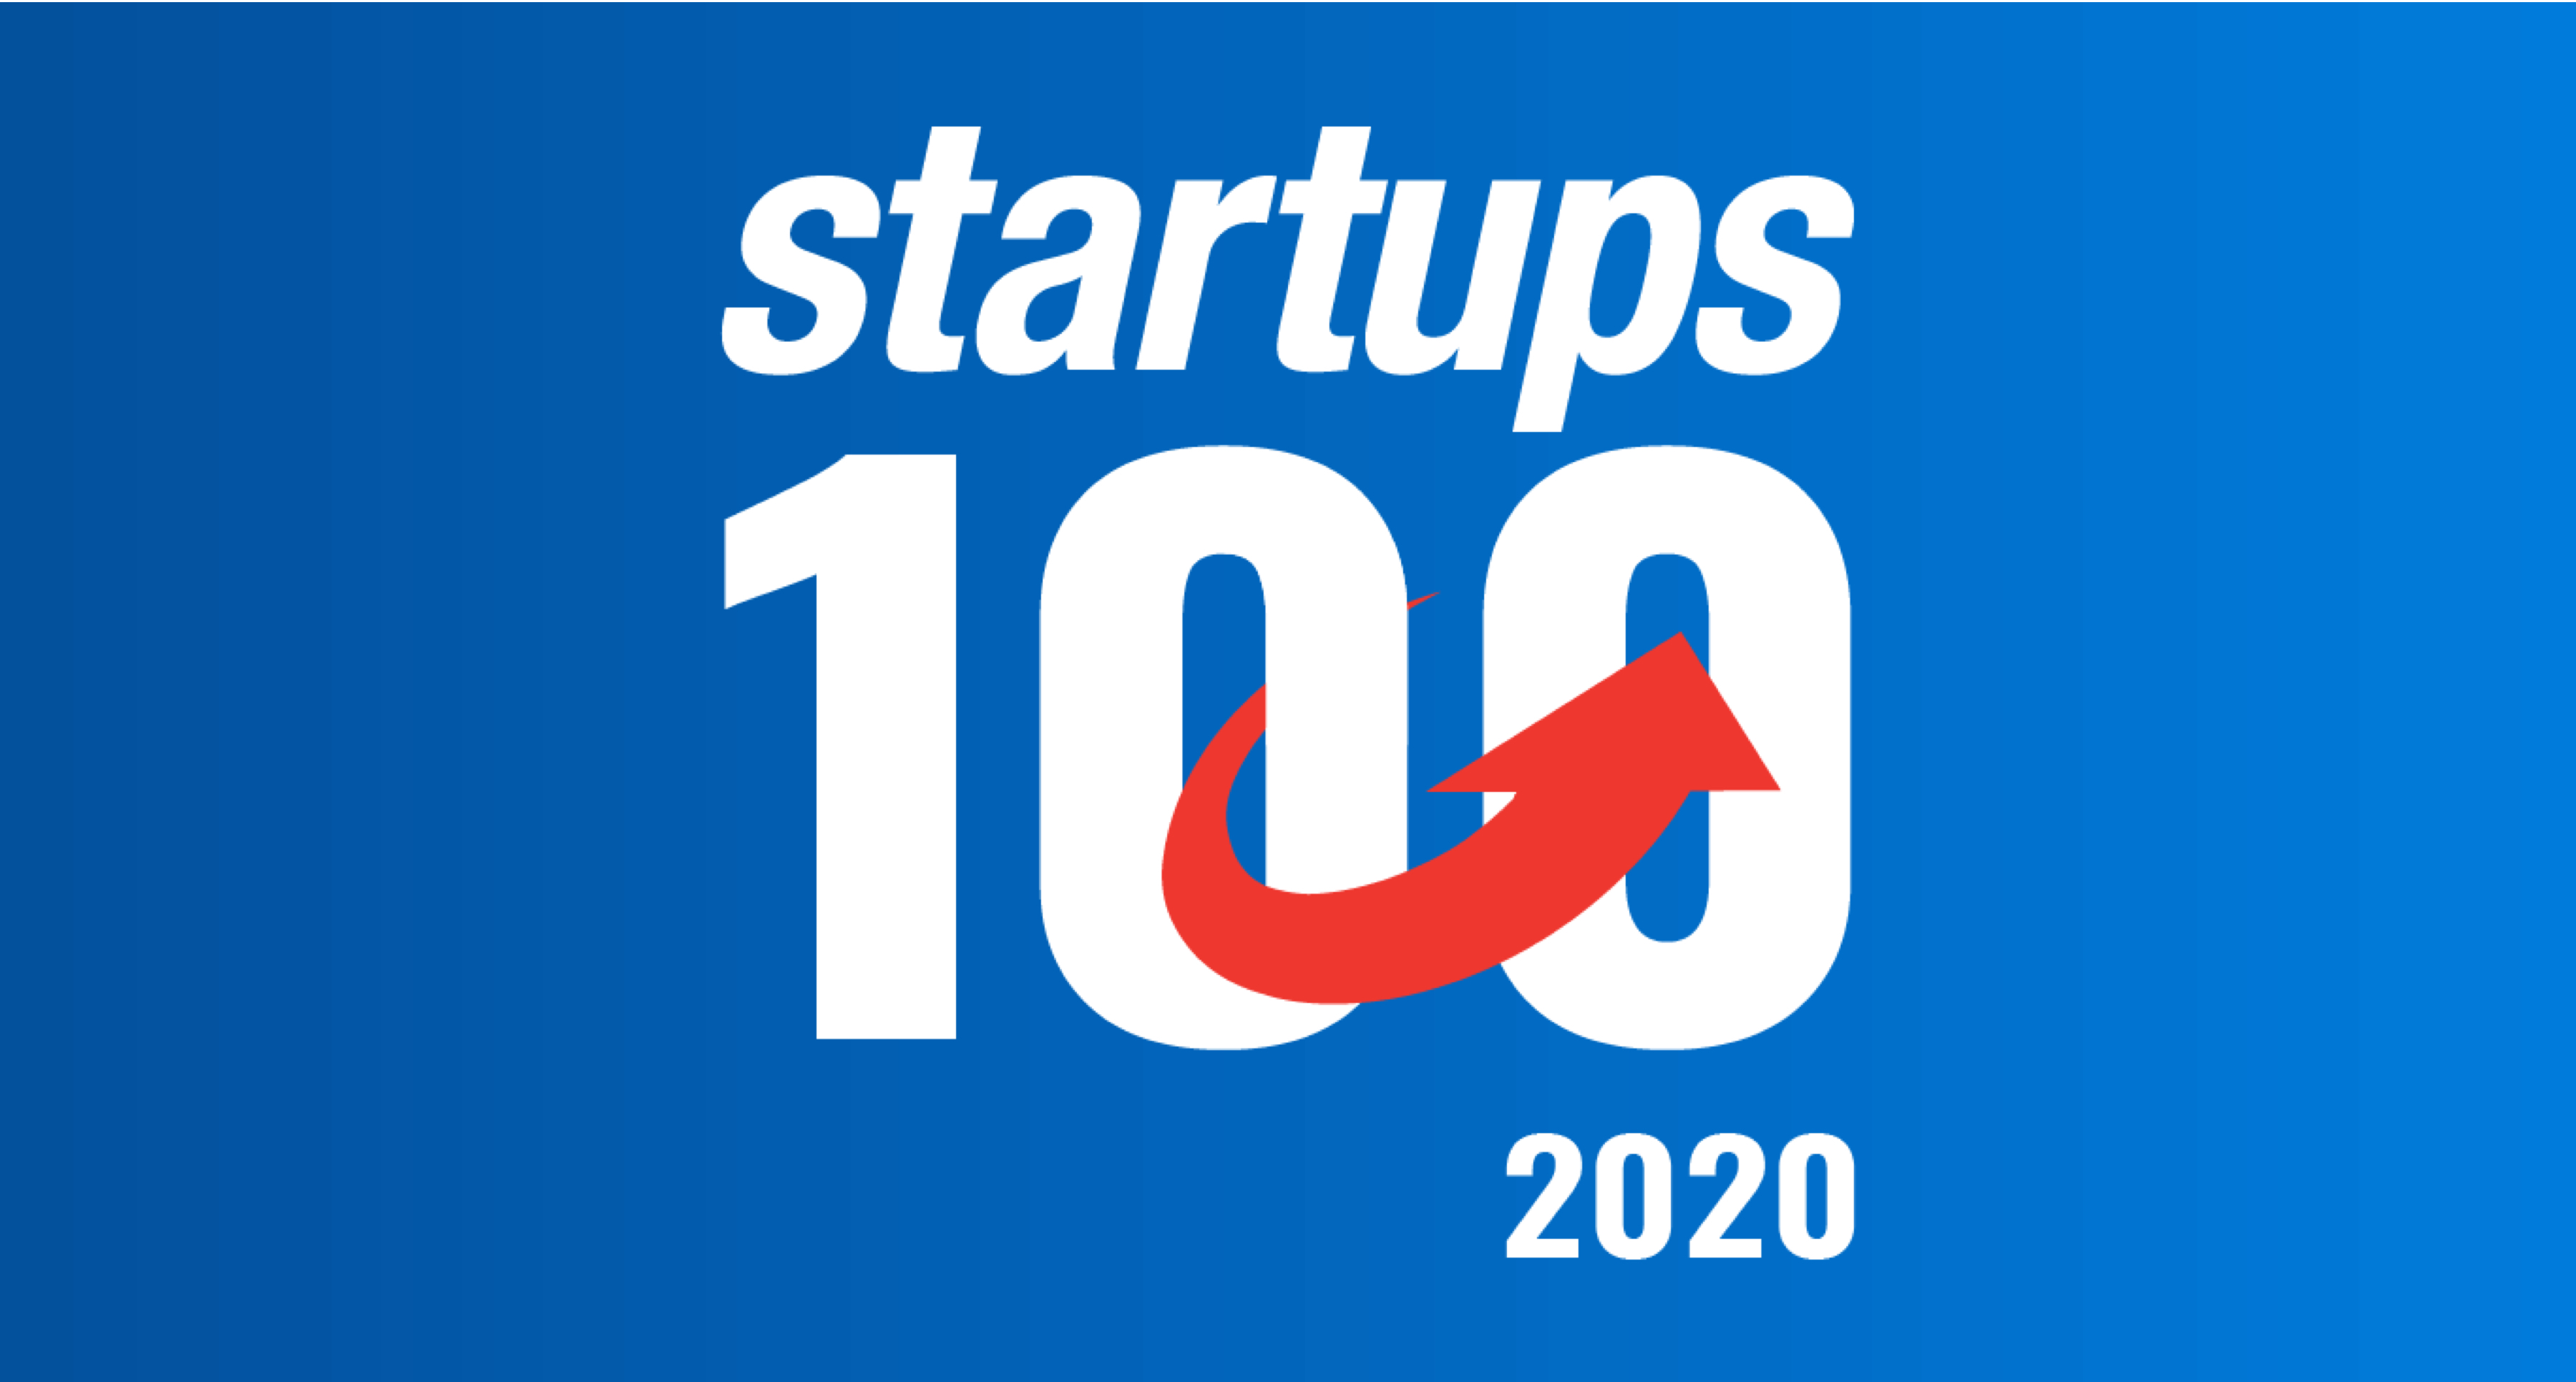 Careology named as one of the UK's Top 100 Startups